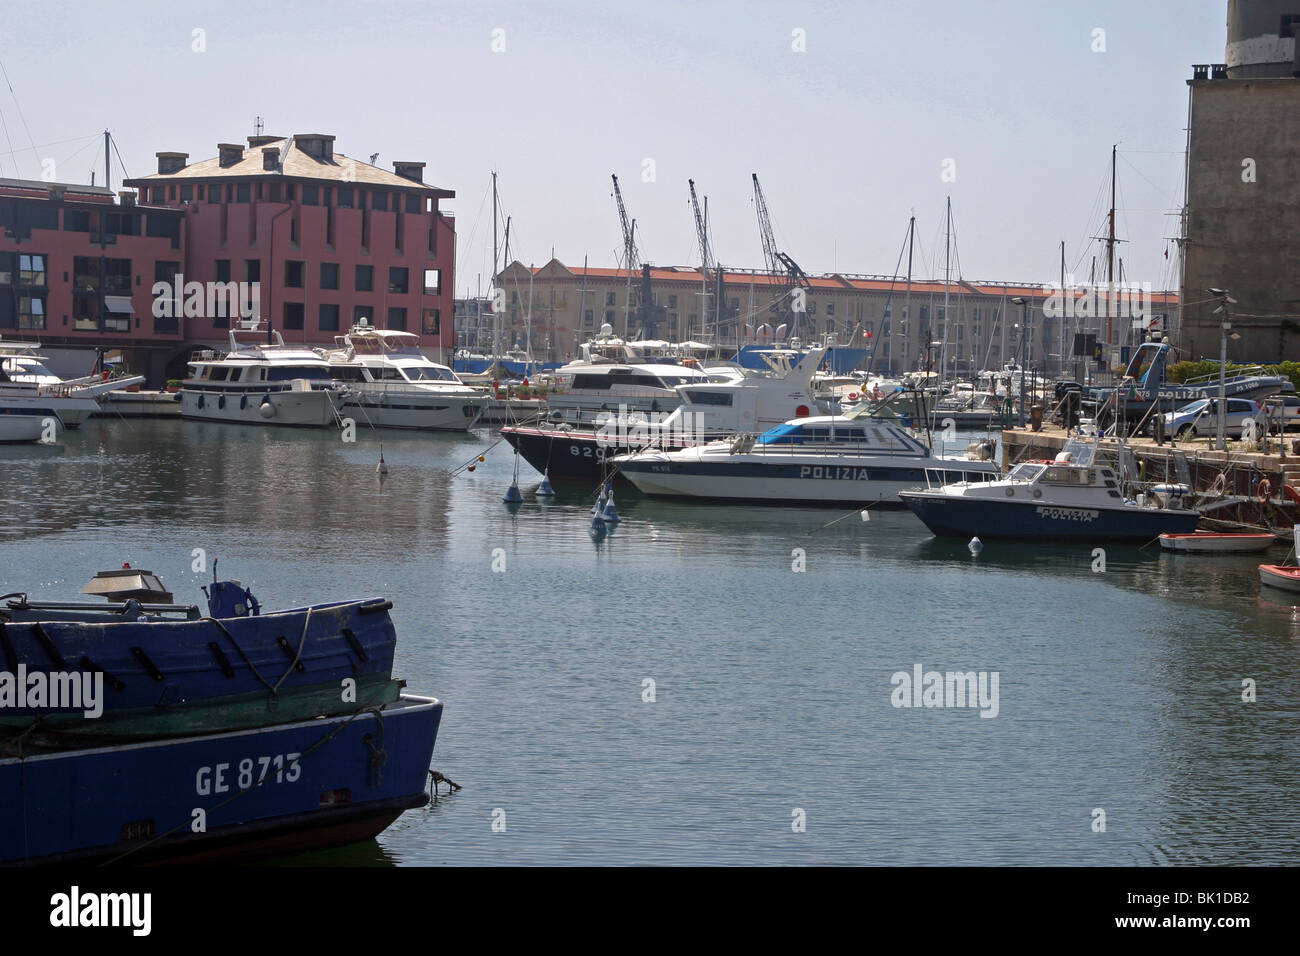 Italy, Genoa, the city harbour - Stock Image